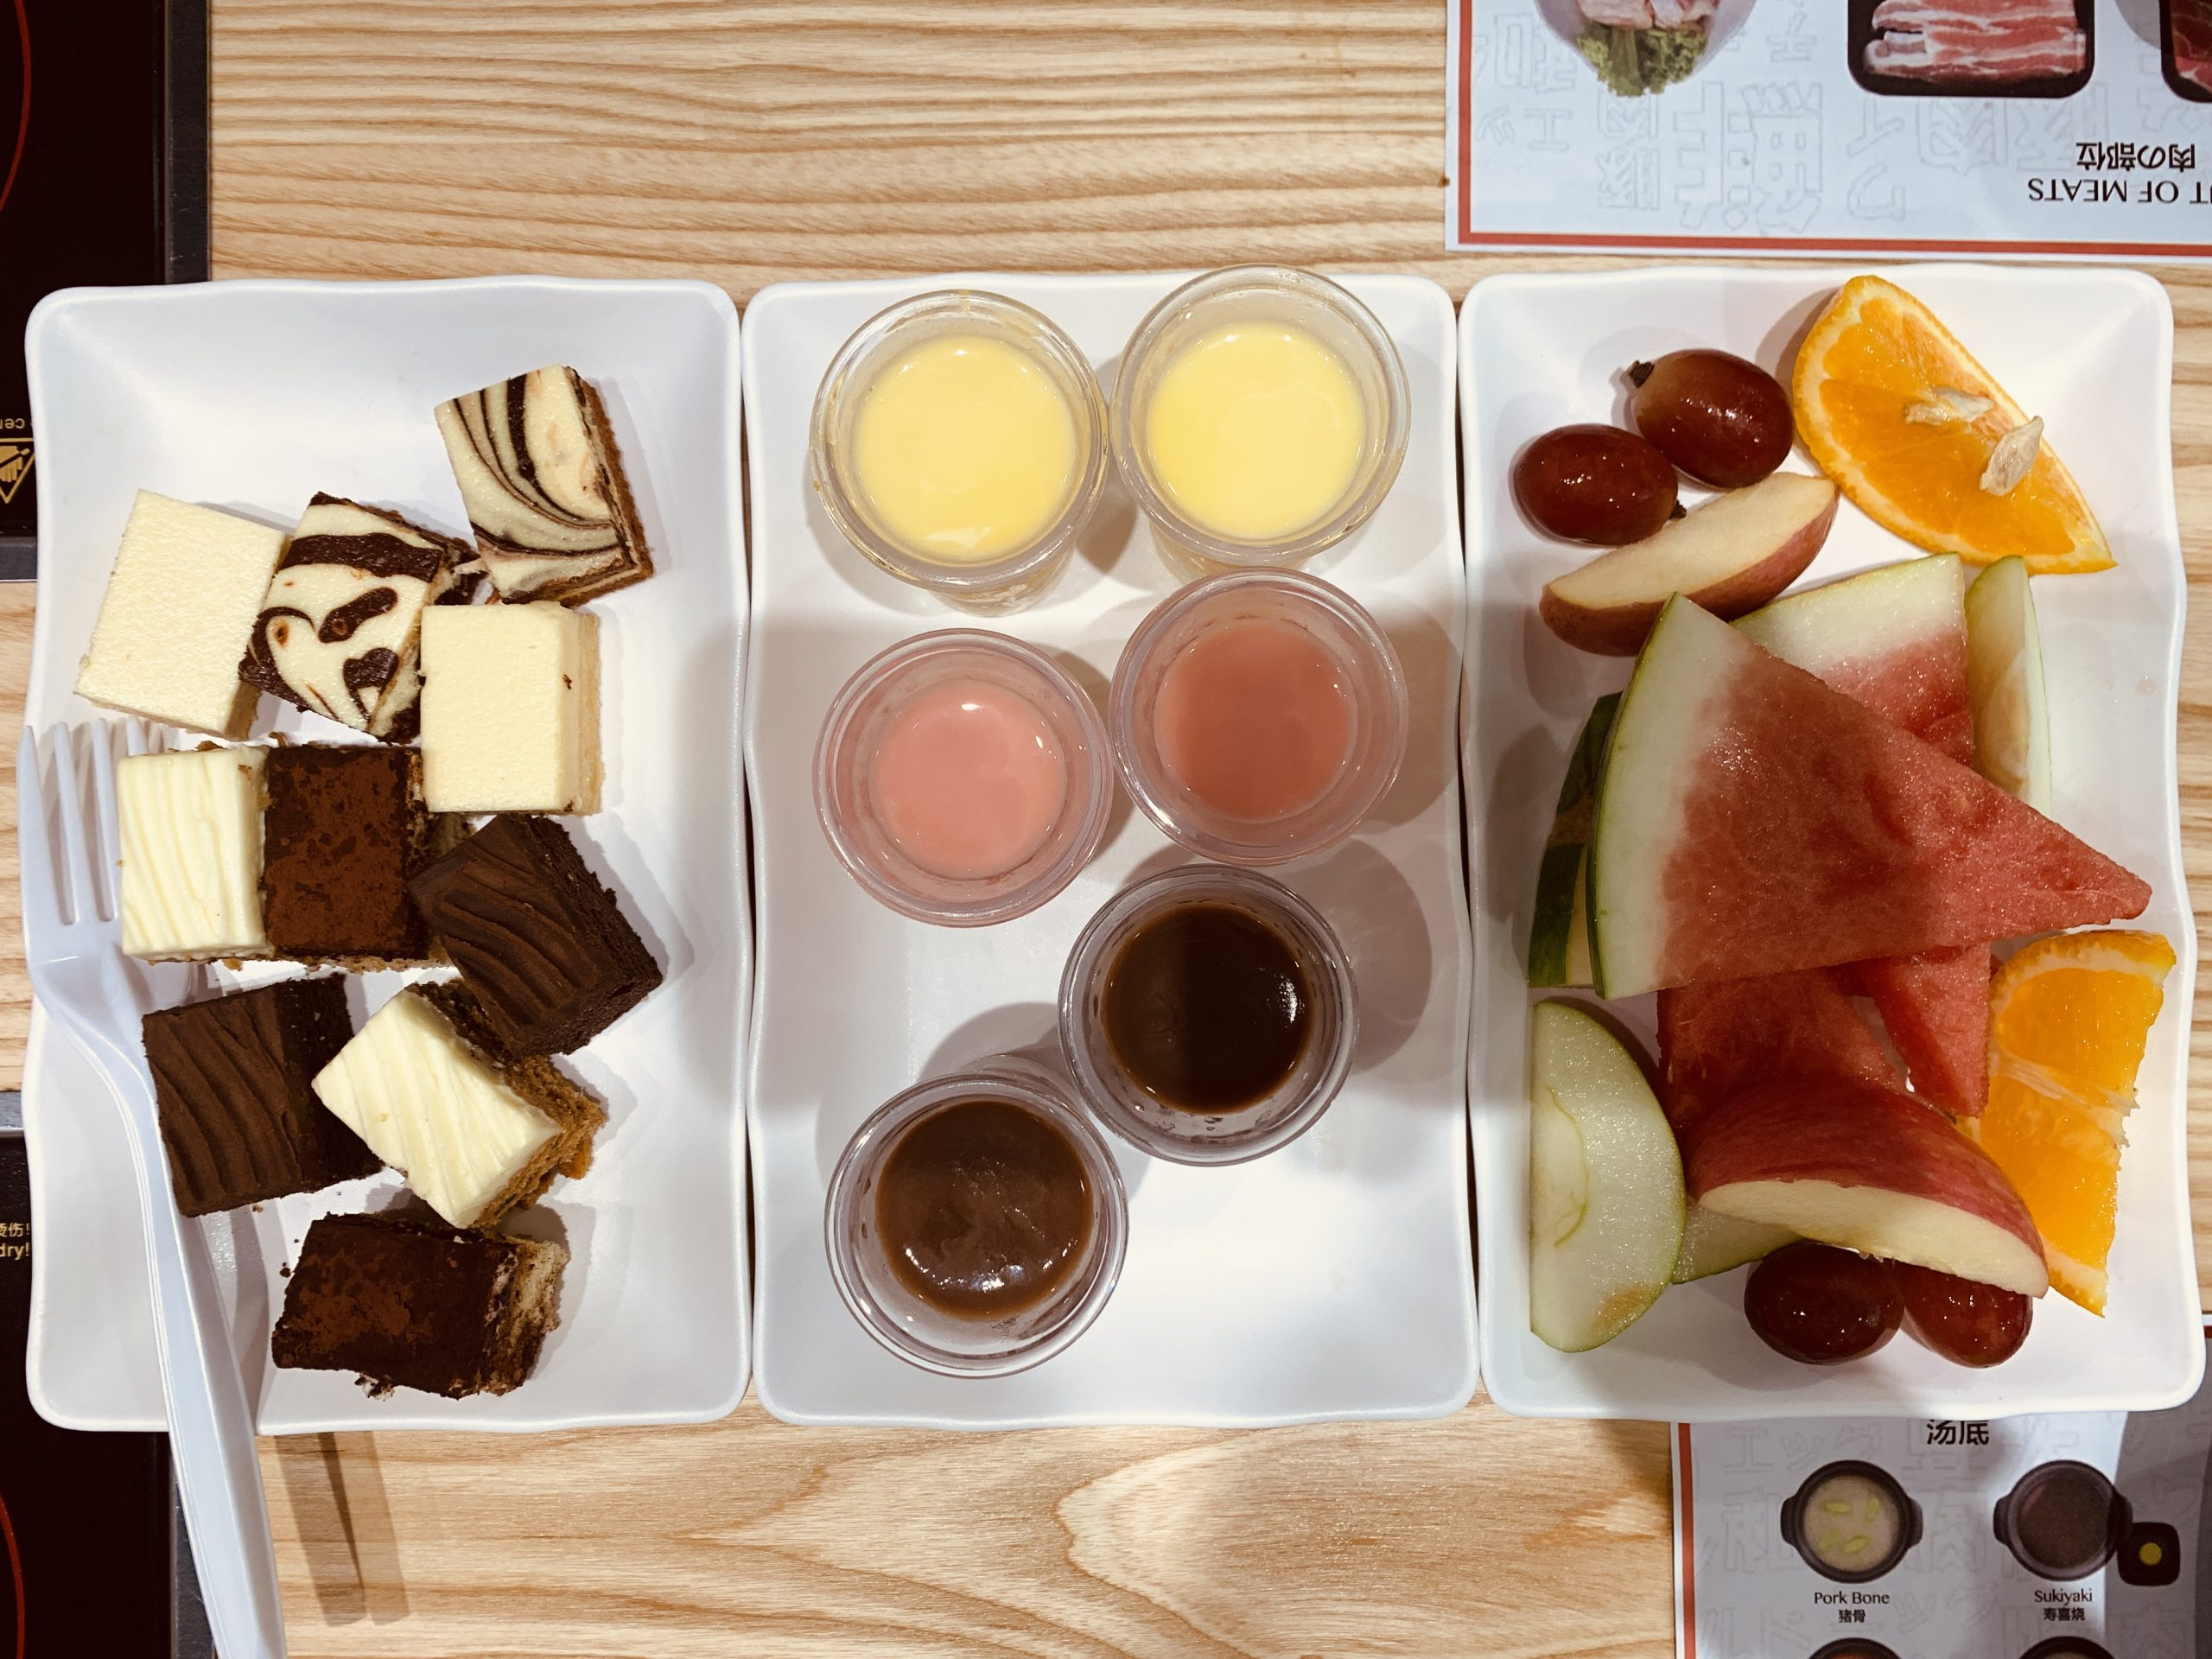 Wagyu More - Desserts and Fruits Top View